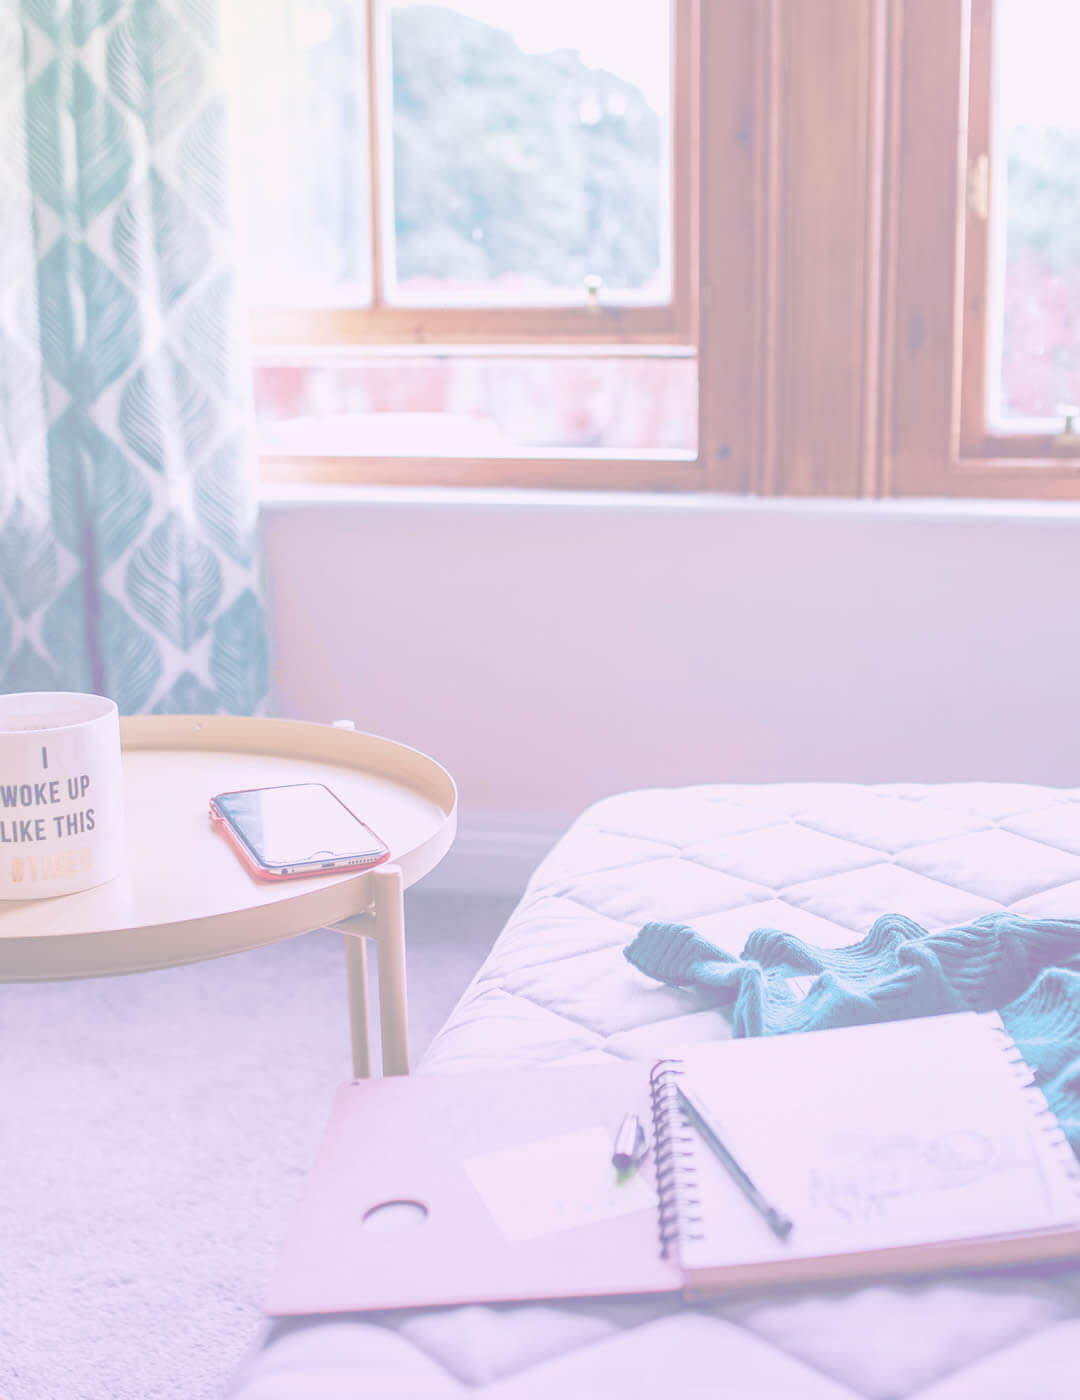 journaling as an idea on how to get your life together